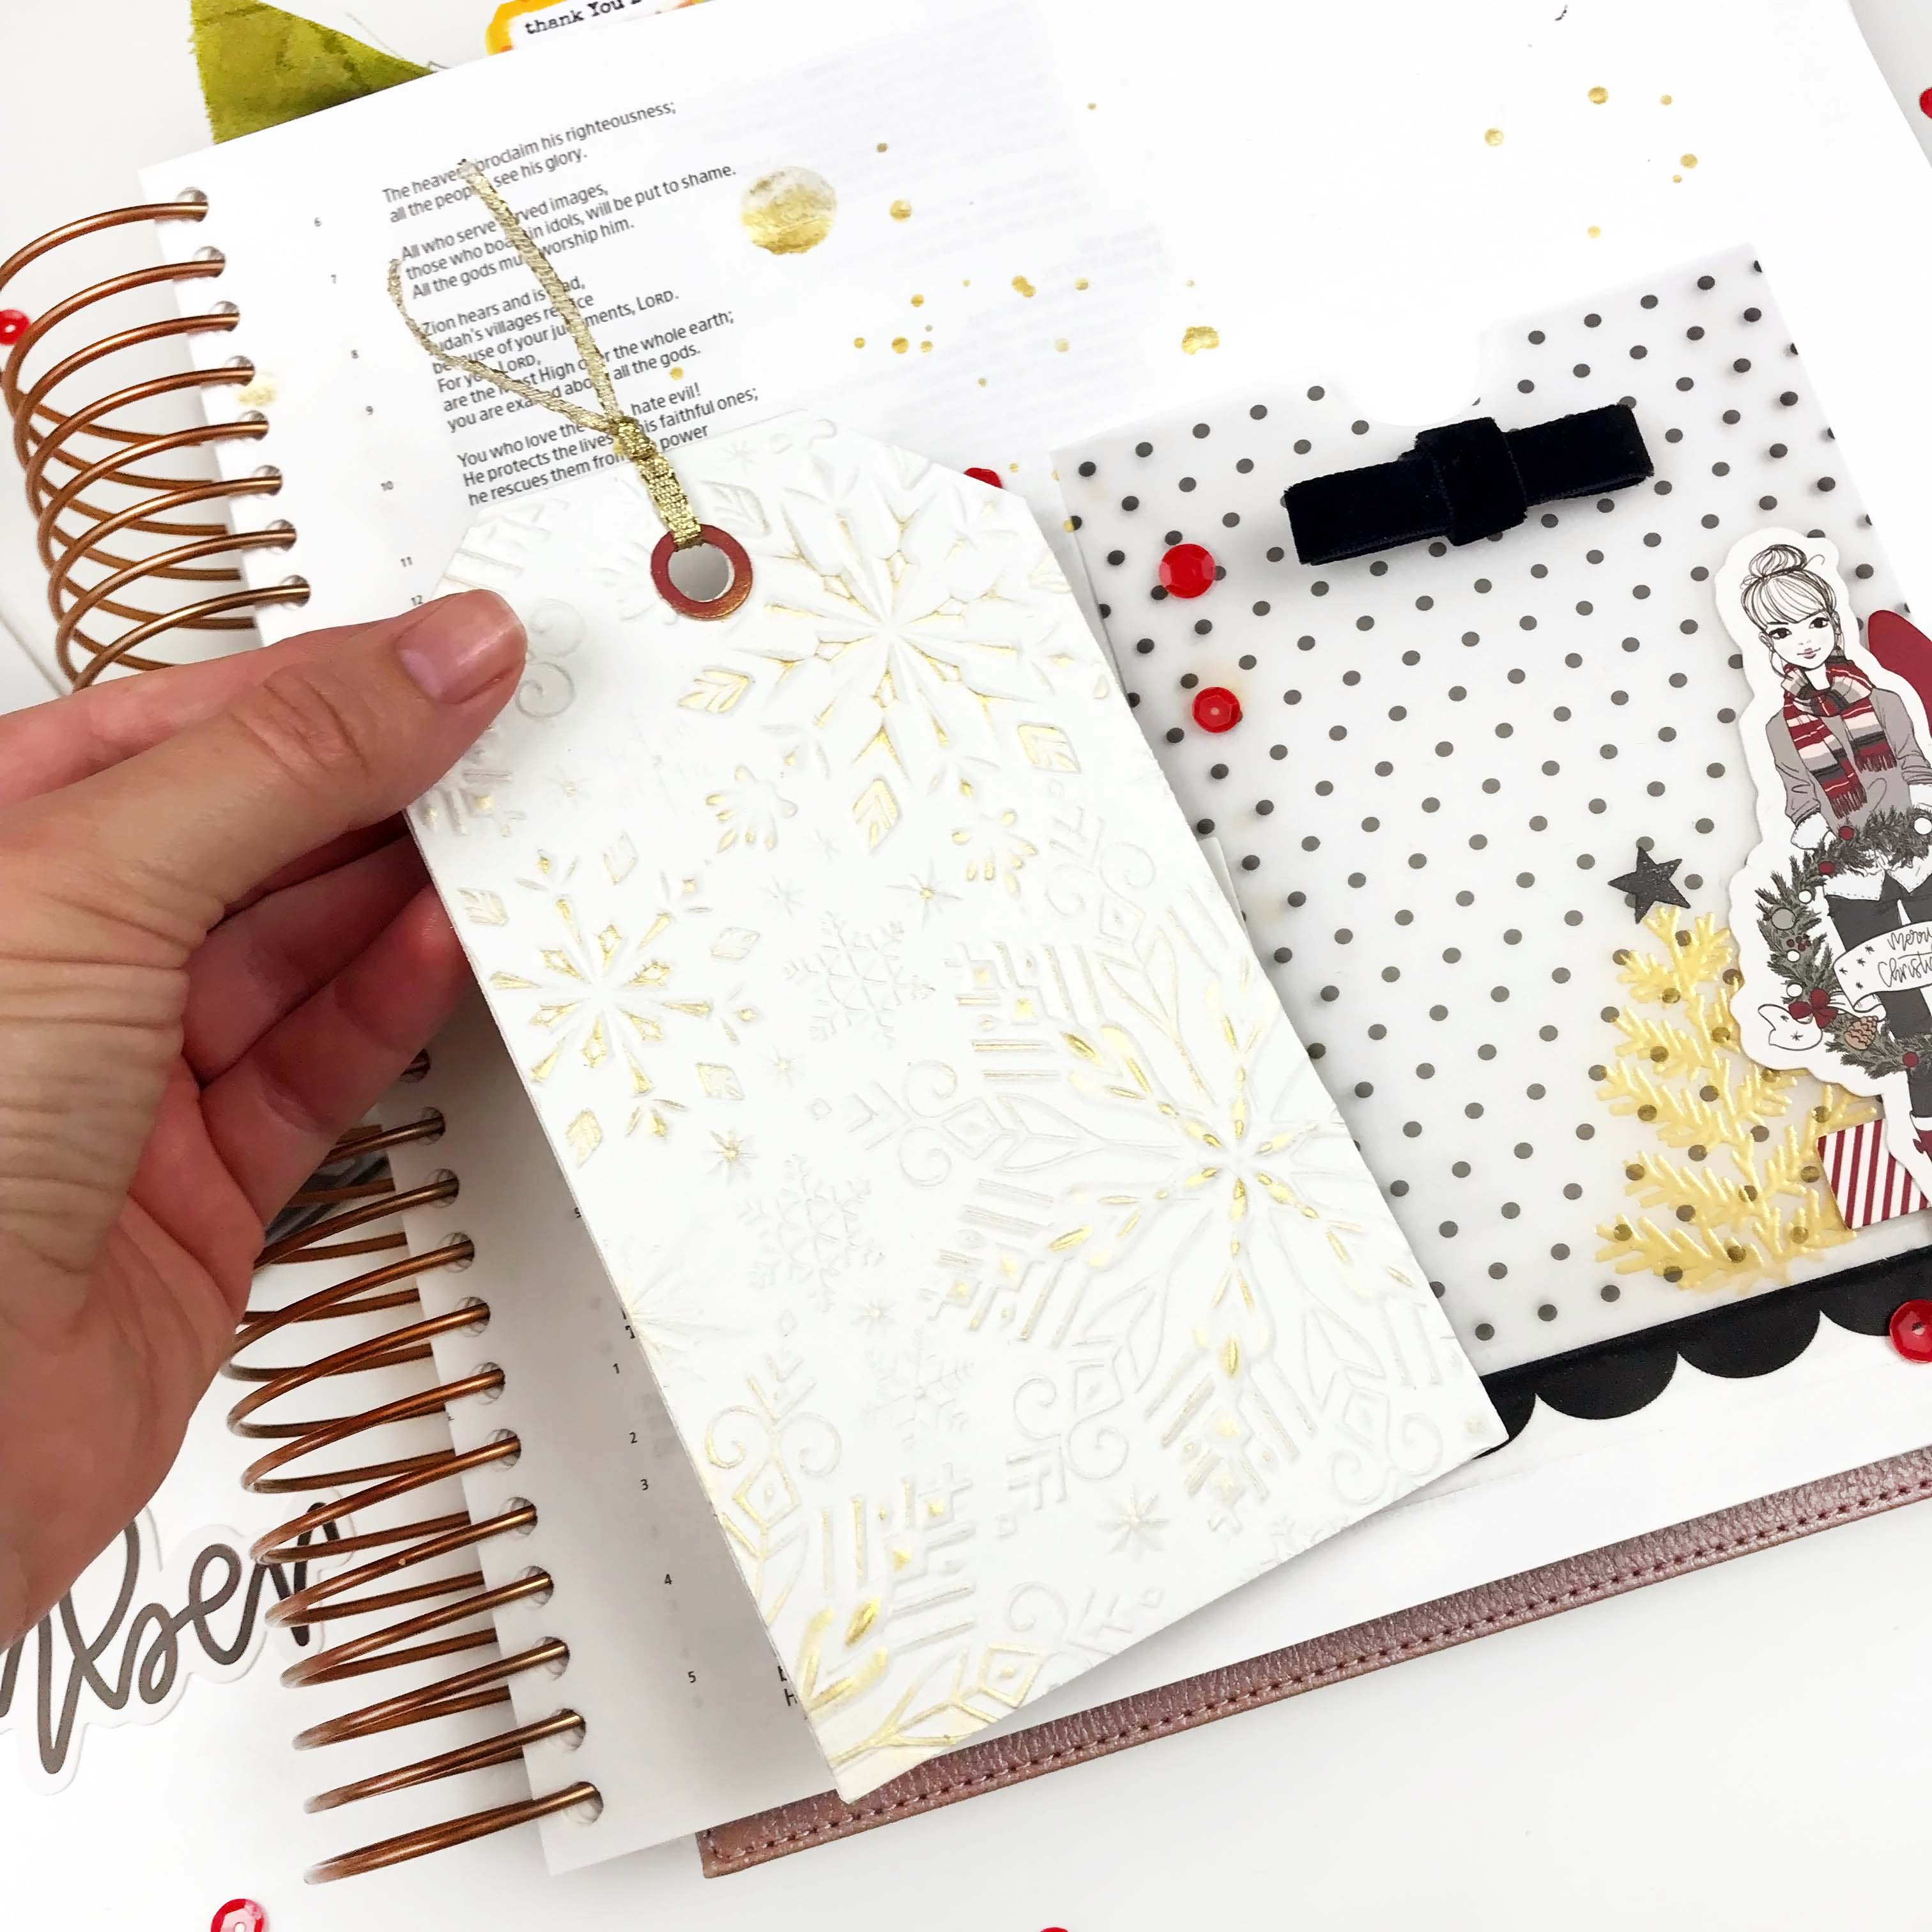 Bible Journaling with a Pocket Prayer 5 | Lindsey Lanning | Felicity Jane